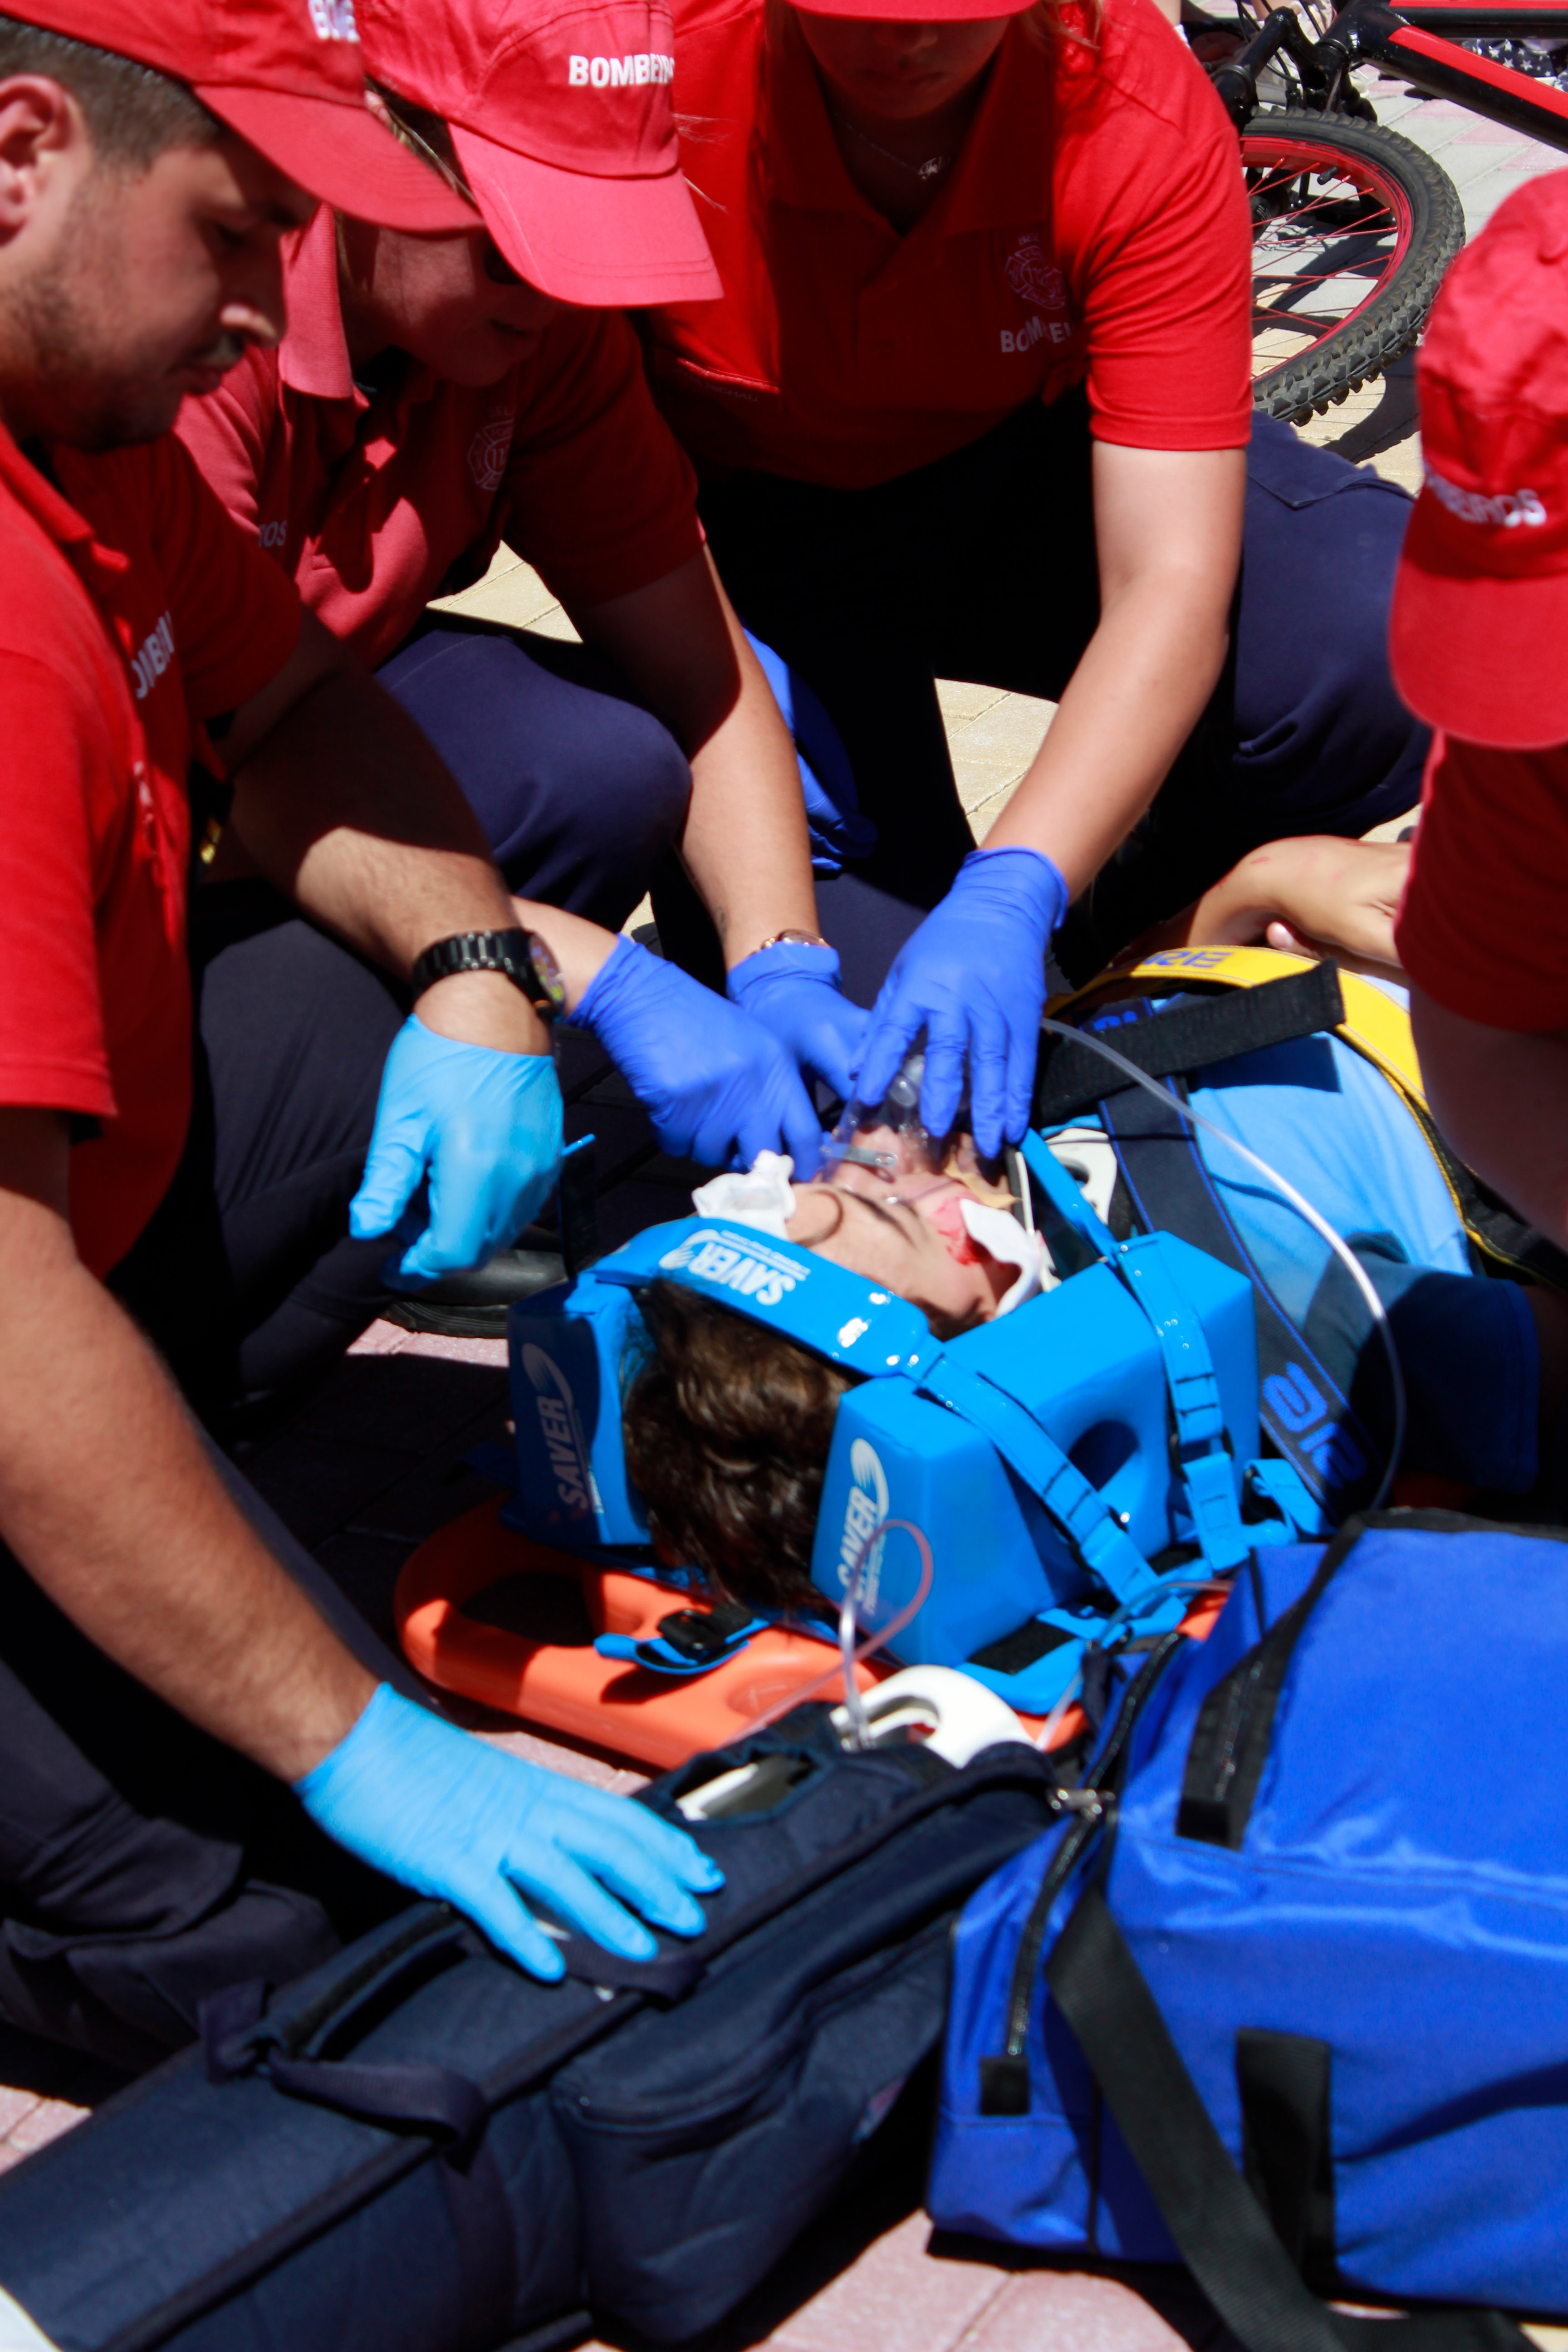 People performing first aid on an injured man; image by Daniela Santos, via Unsplash.com.